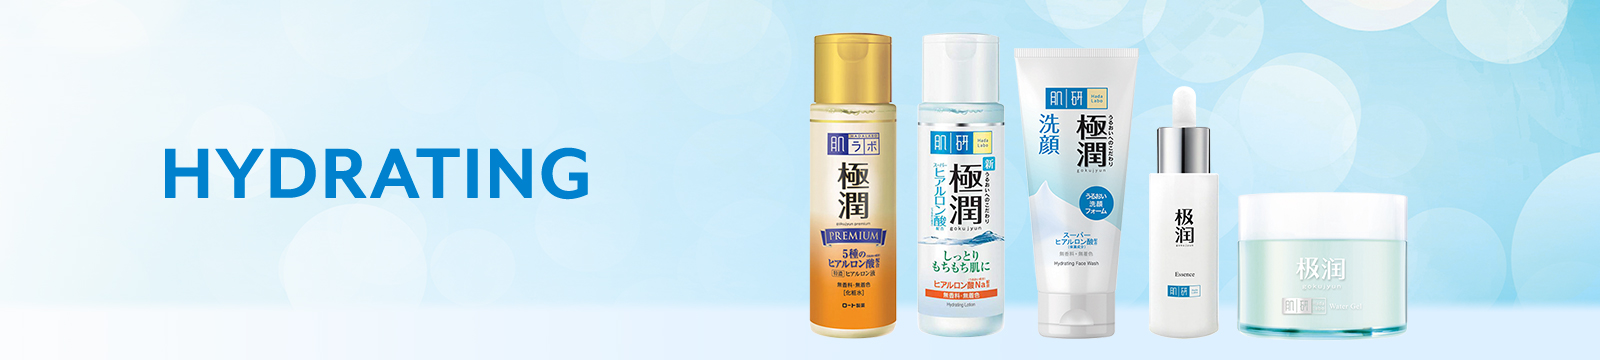 hada-labo-flagship-category-hydrating-banner